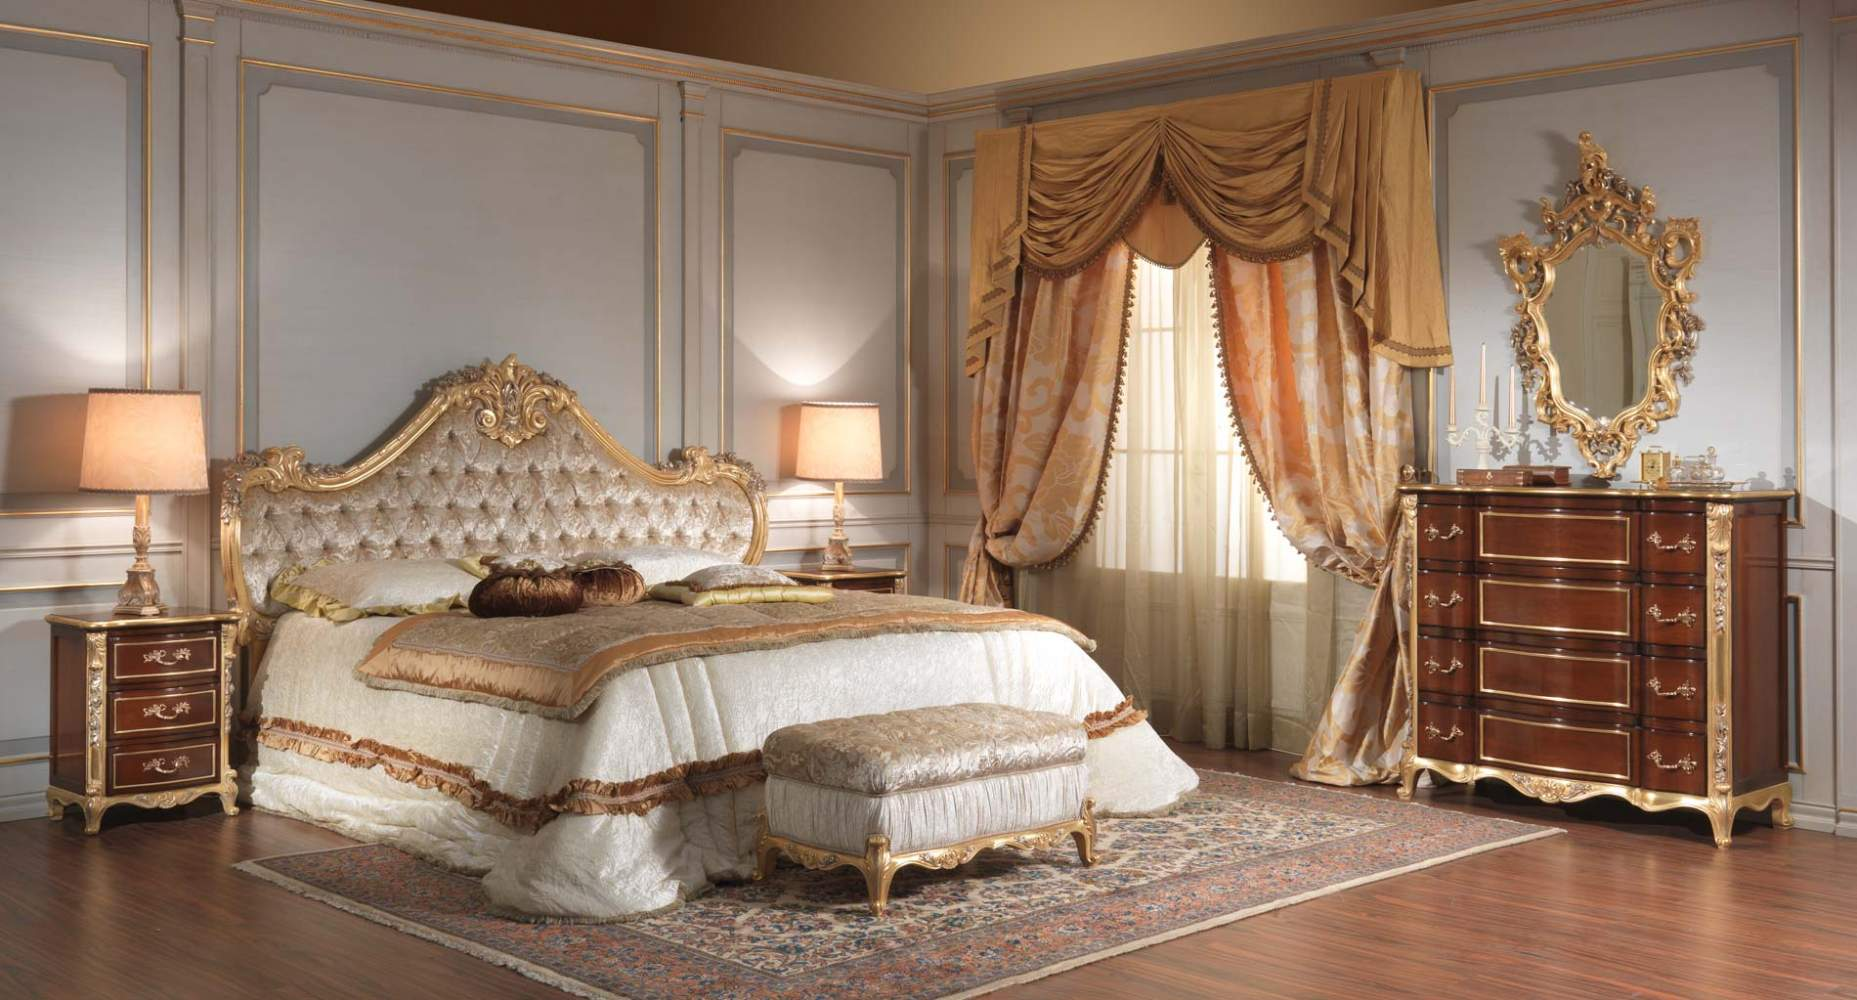 Classic italian 18th century bedroom | Vimercati Classic Furniture